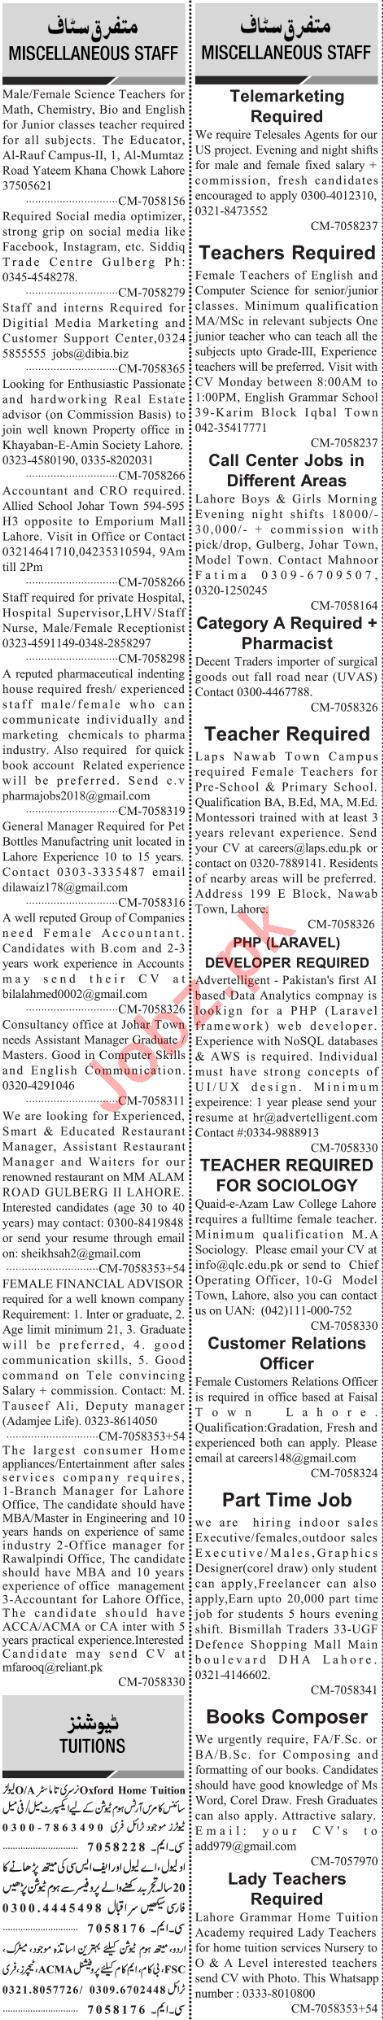 Jang Sunday Classified Ads 30th Dec 2018 for Multiple Staff